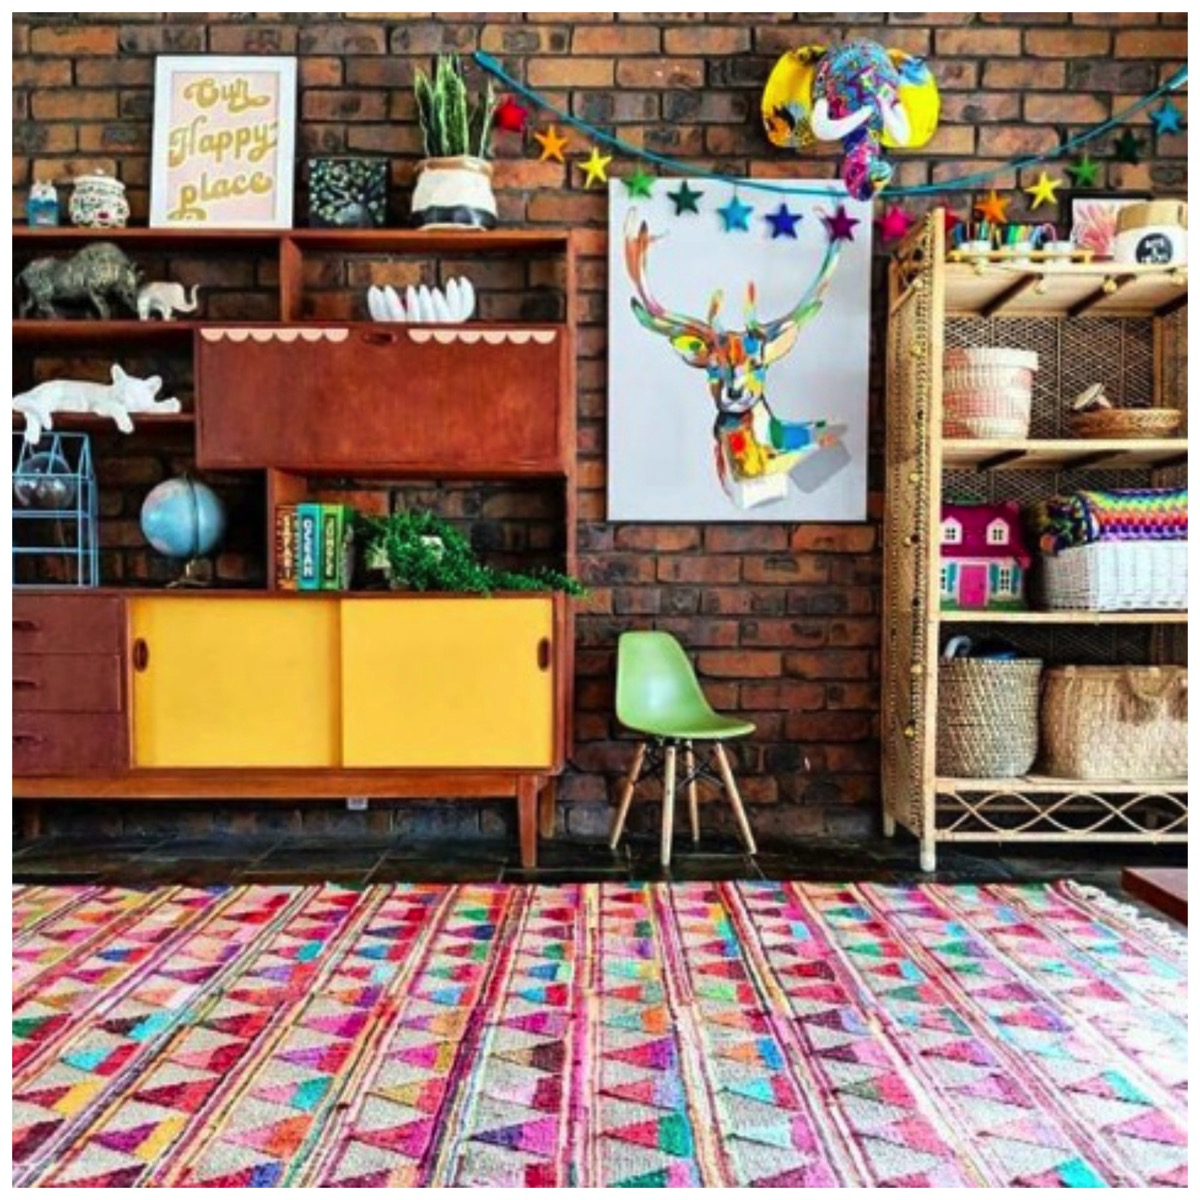 Brick wall colorful home decor hectic eclectic home tour dig and hang